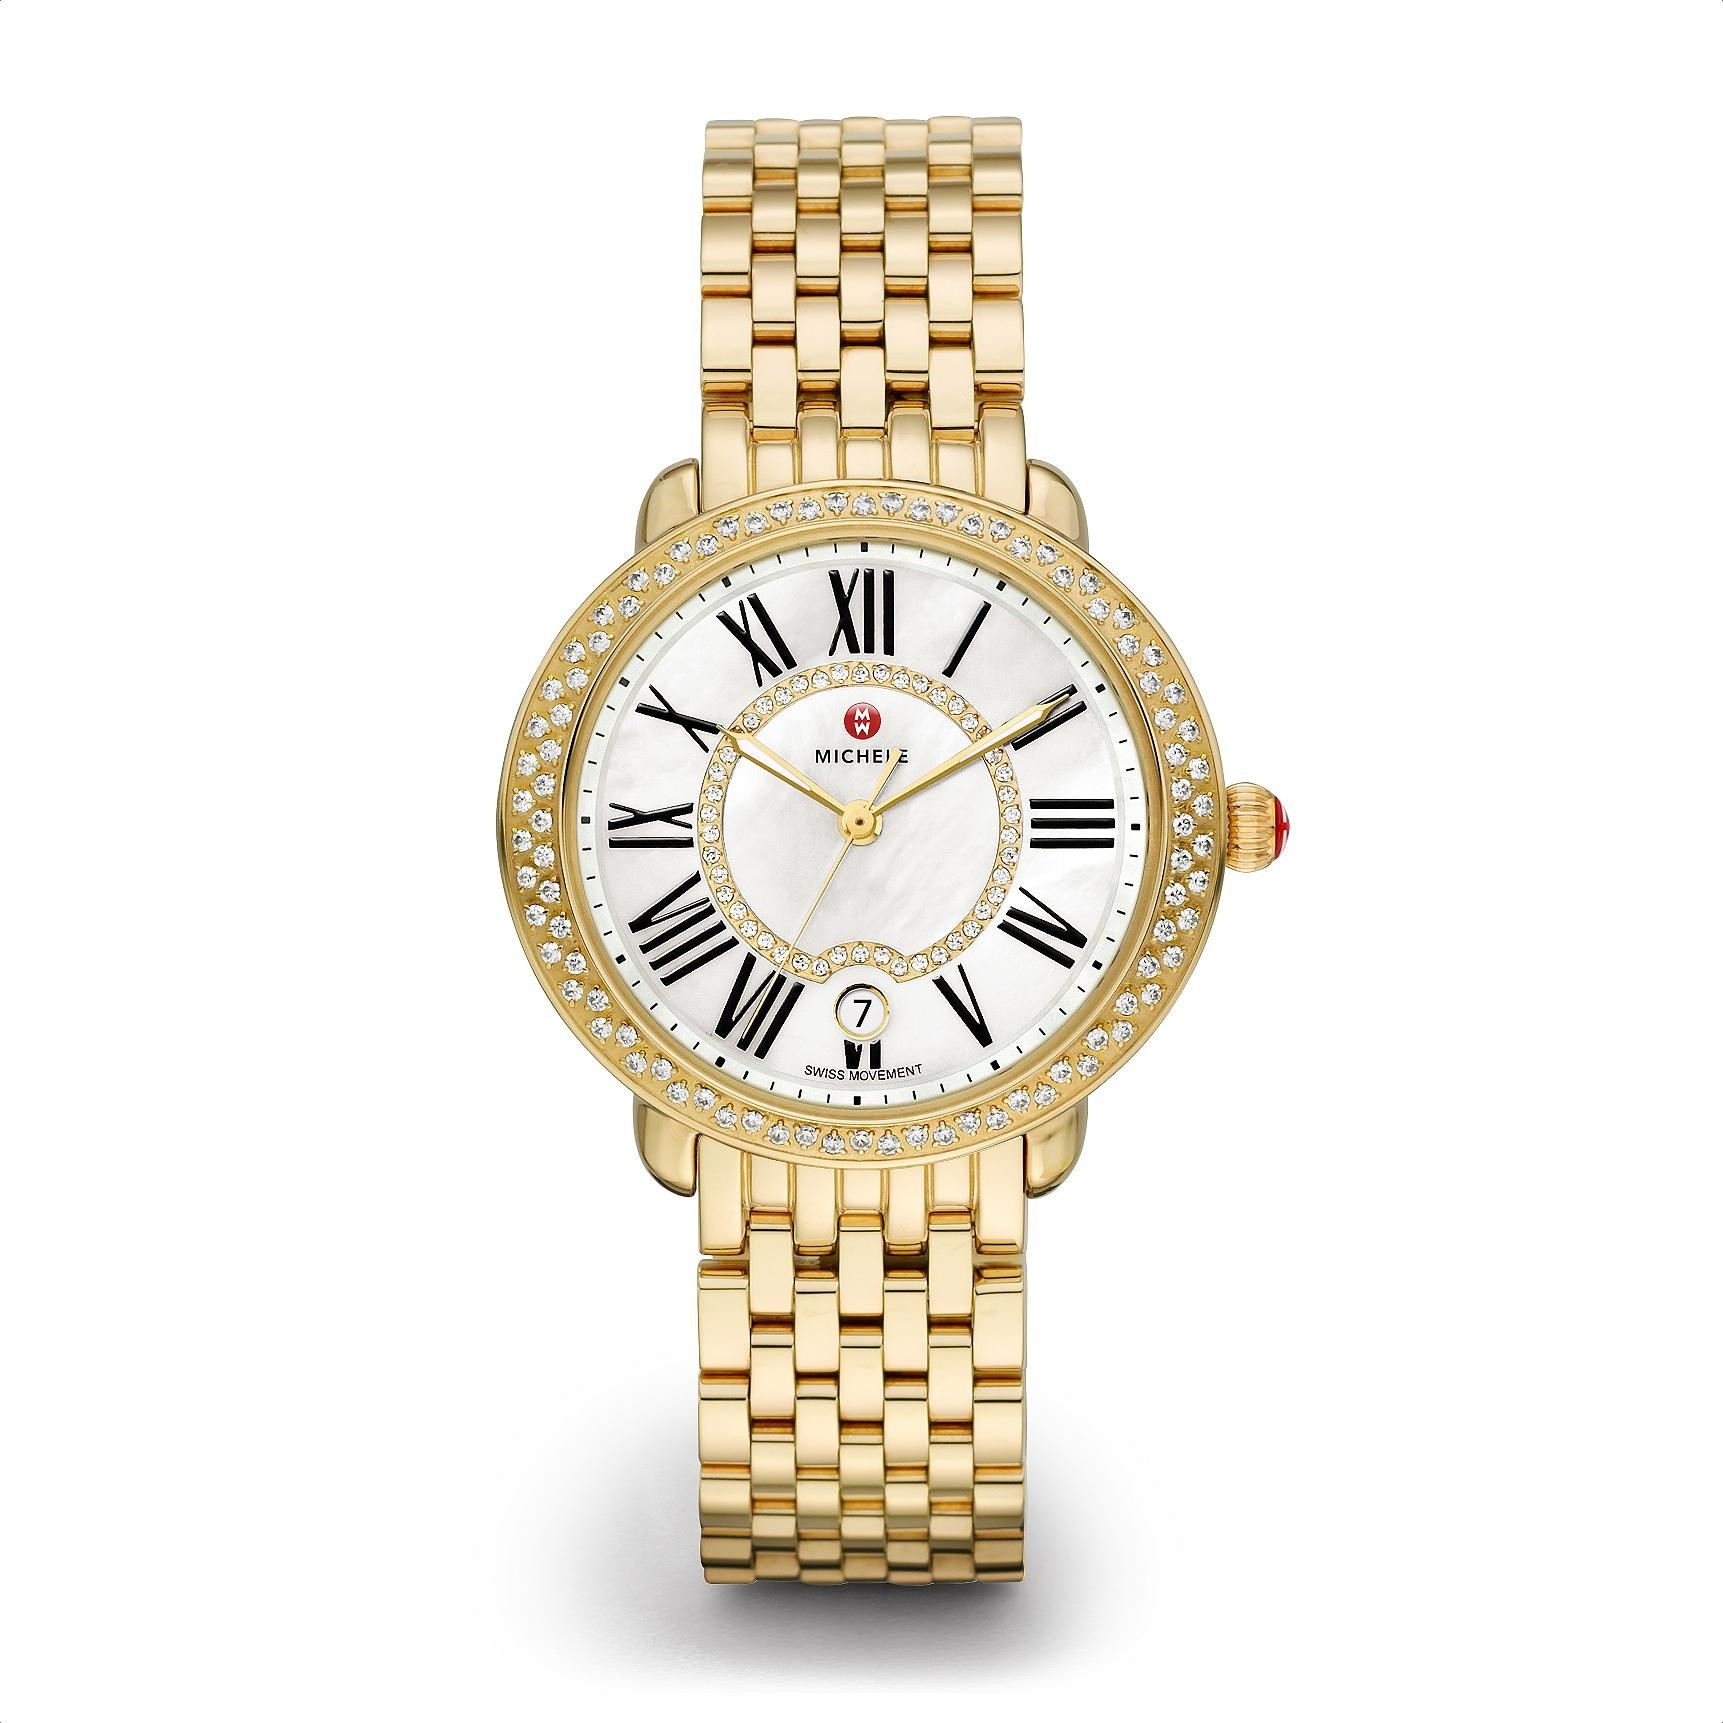 Michele Serein 16 Yellow Gold Mother of Pearl Dial with Diamond Bezel Watch